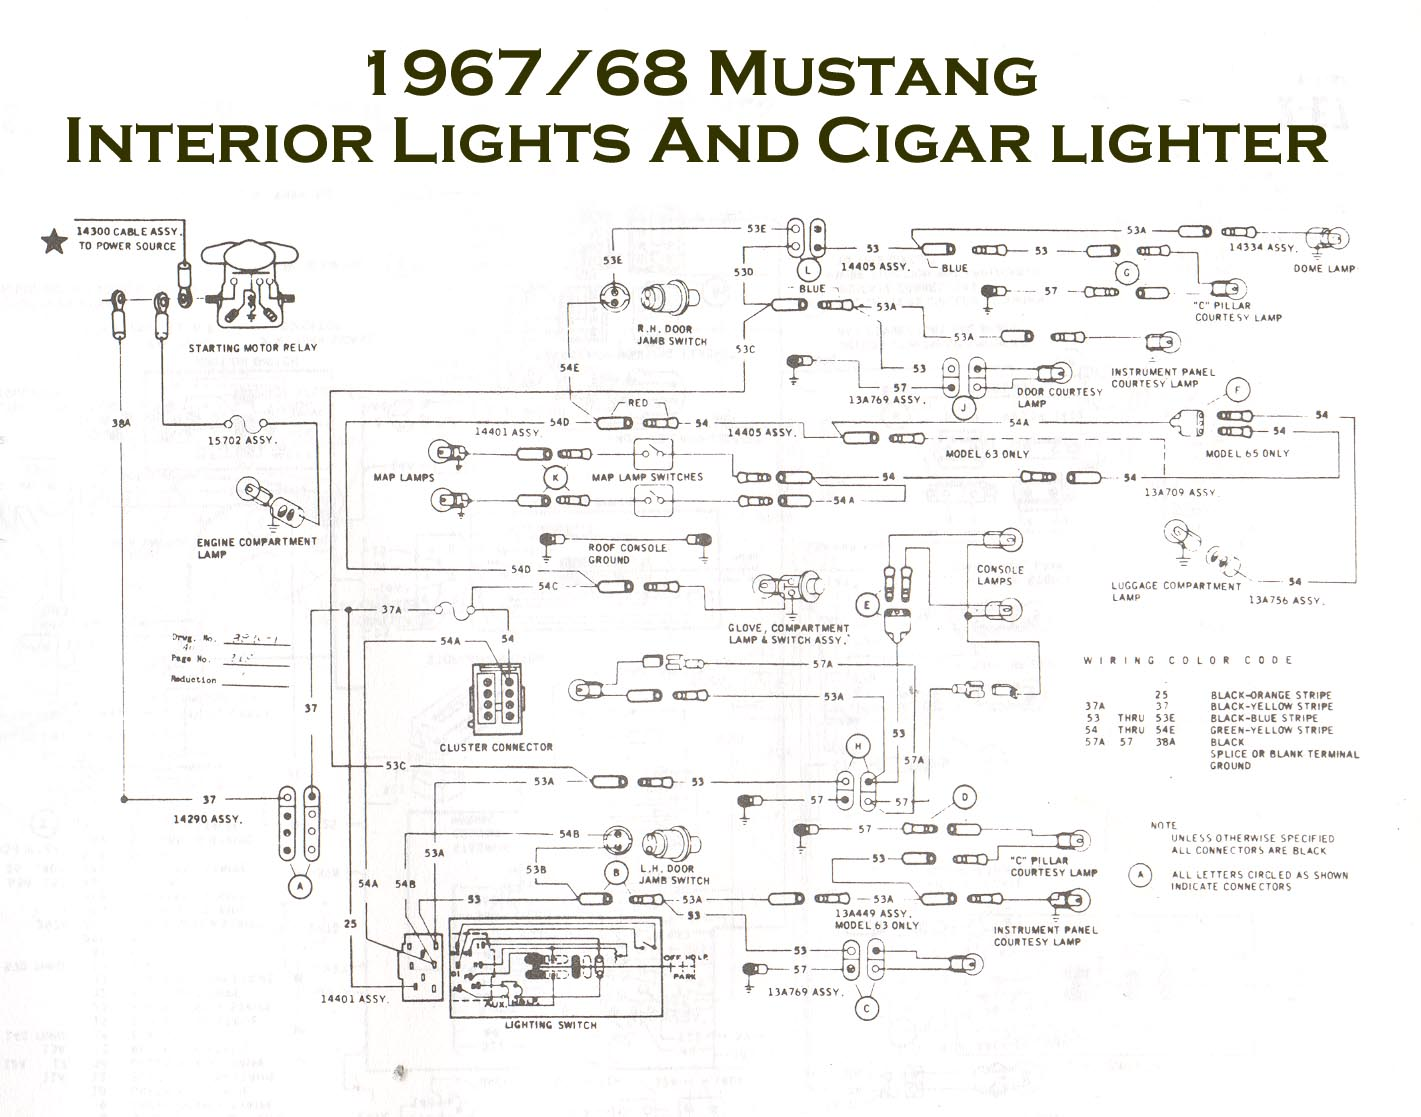 1968 mustang coupe need schmatic on under dash wiring dome light this is a common total wiring diagram for your mustang